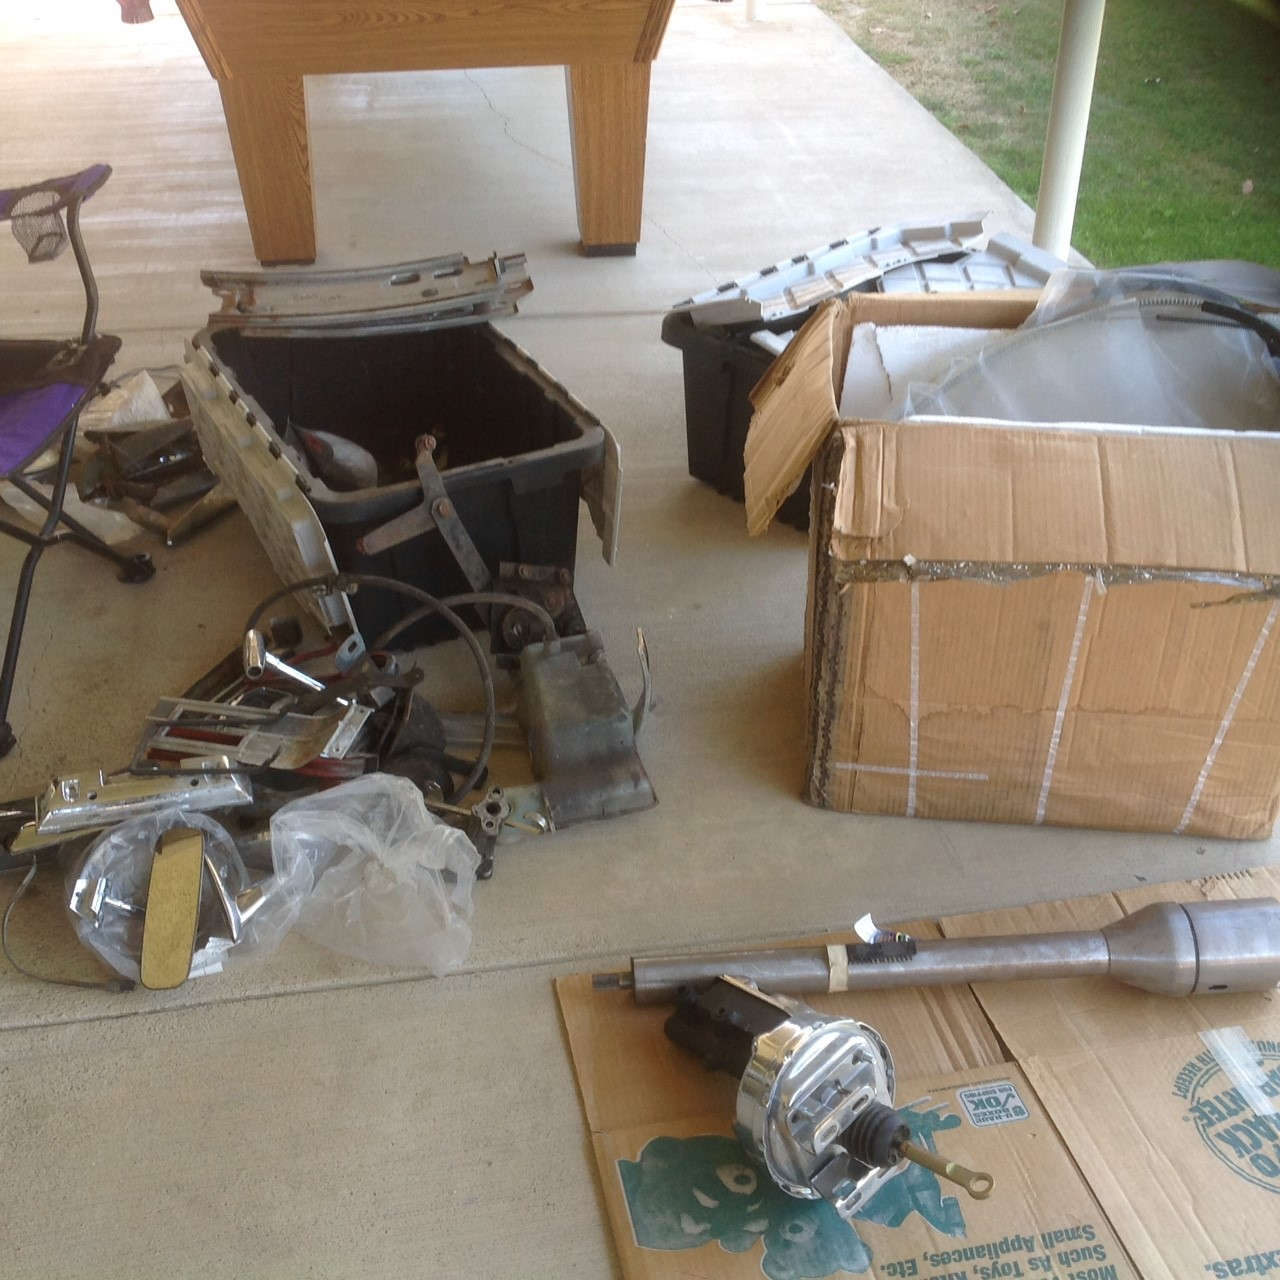 1966 Ford Mustang parts